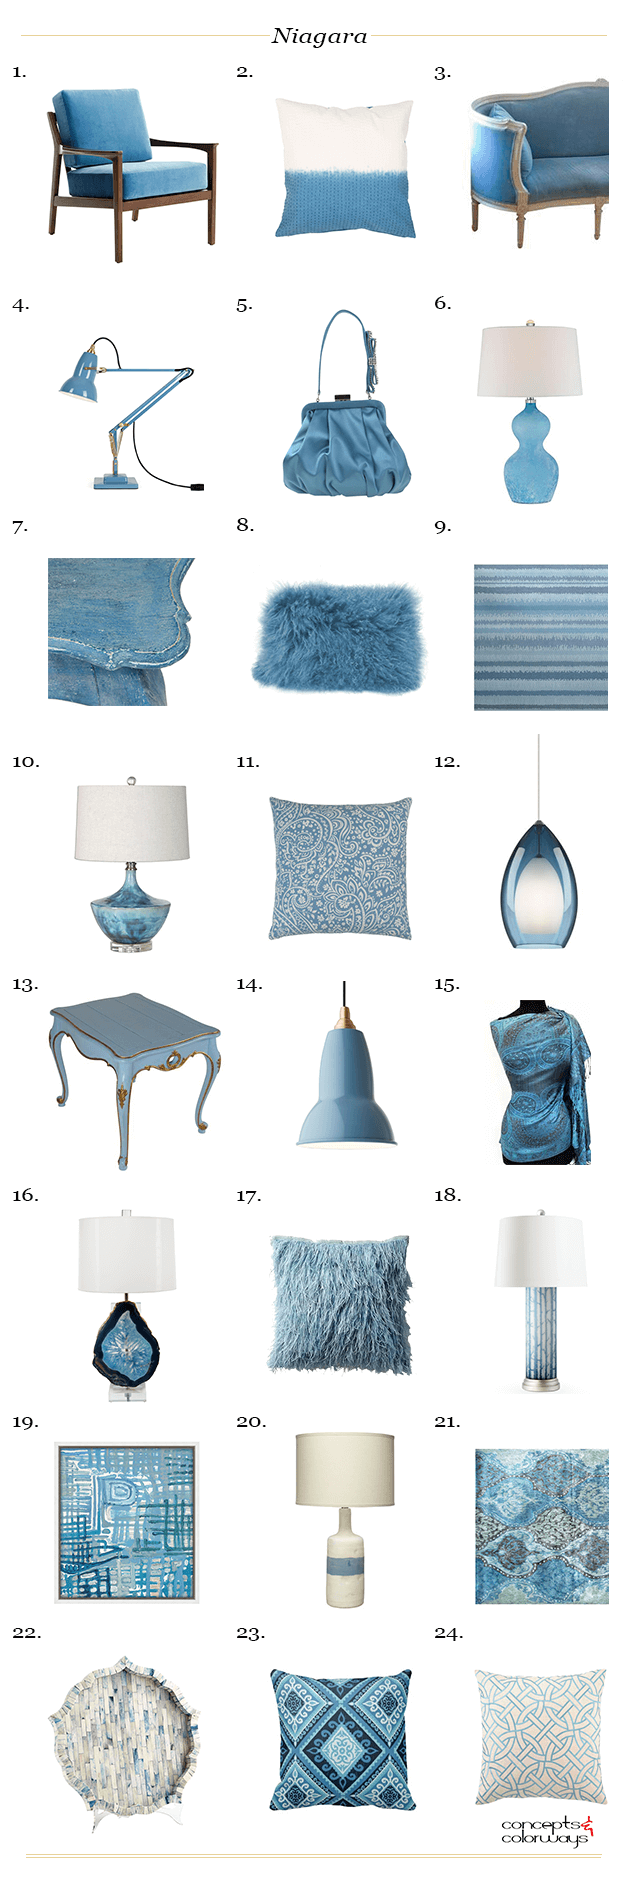 pantone niagara interior design product roundup